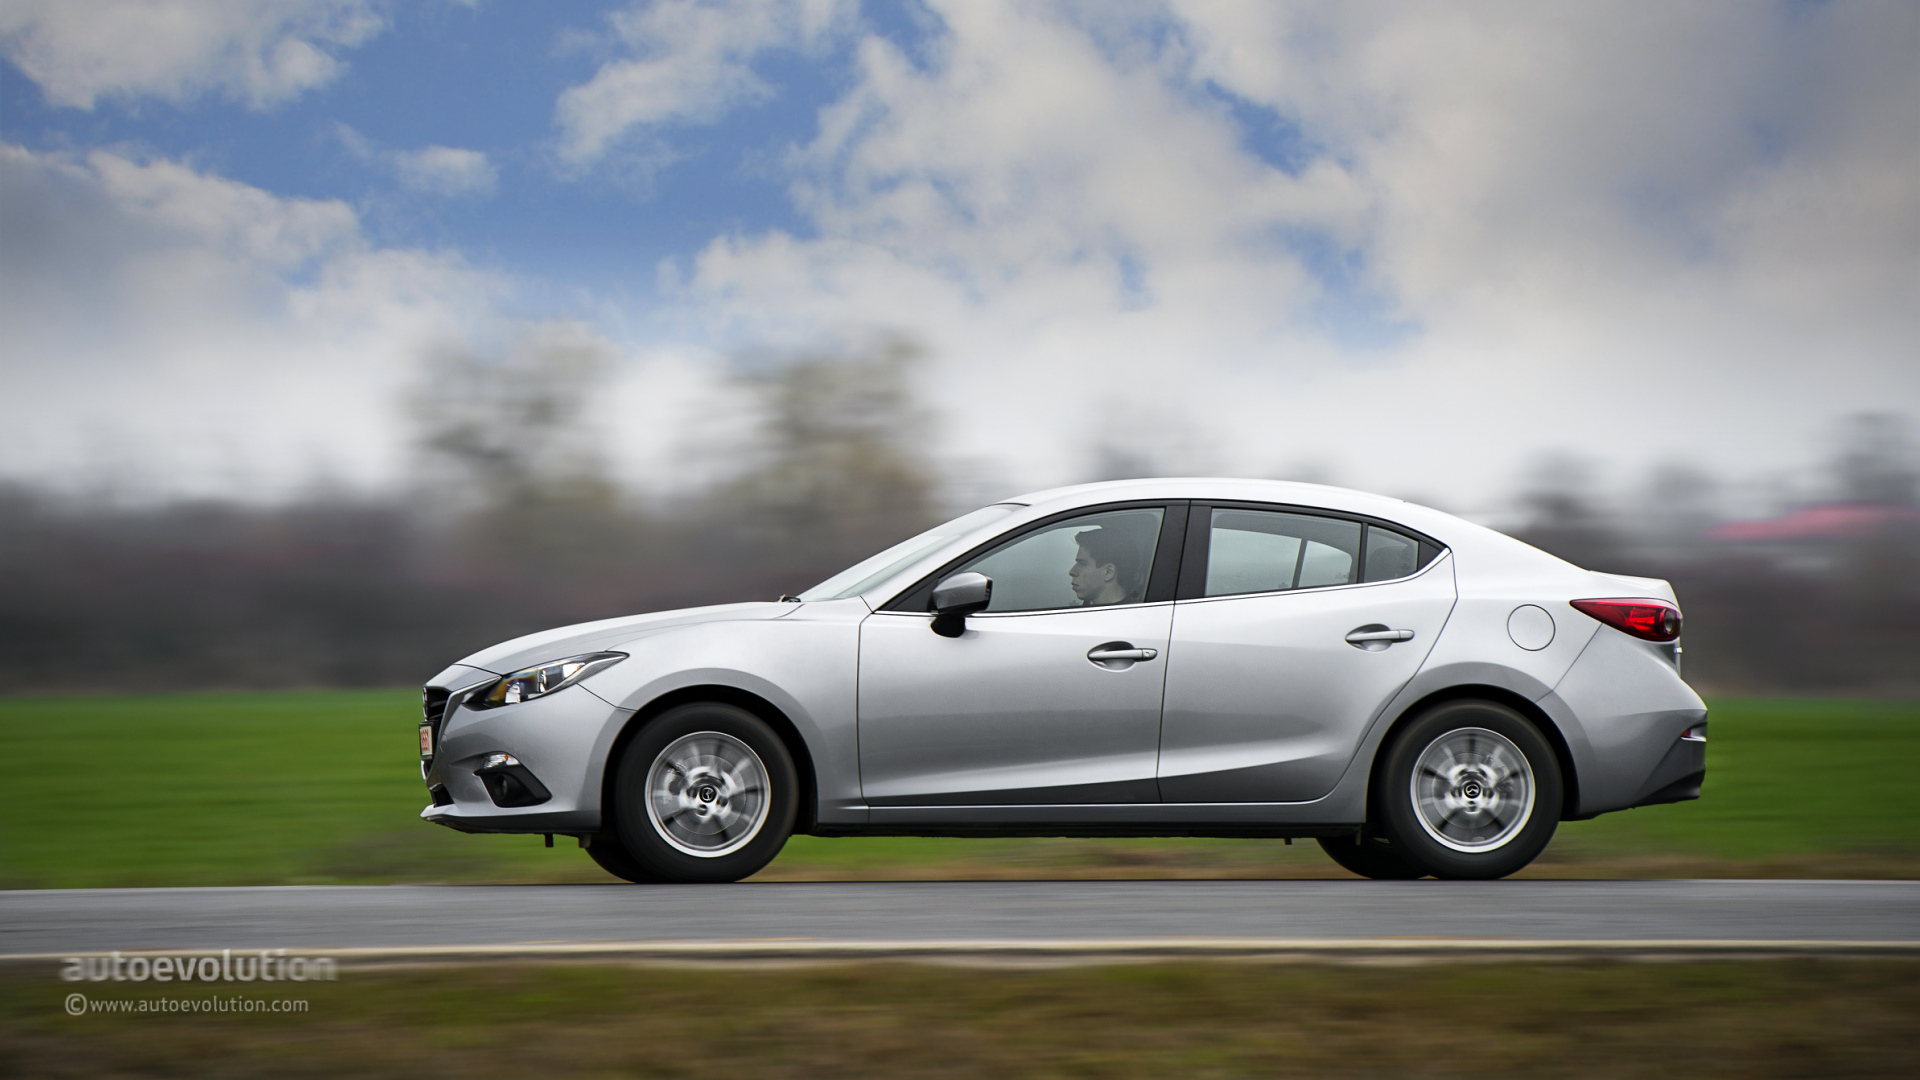 2014 mazda3 sedan review autoevolution. Black Bedroom Furniture Sets. Home Design Ideas